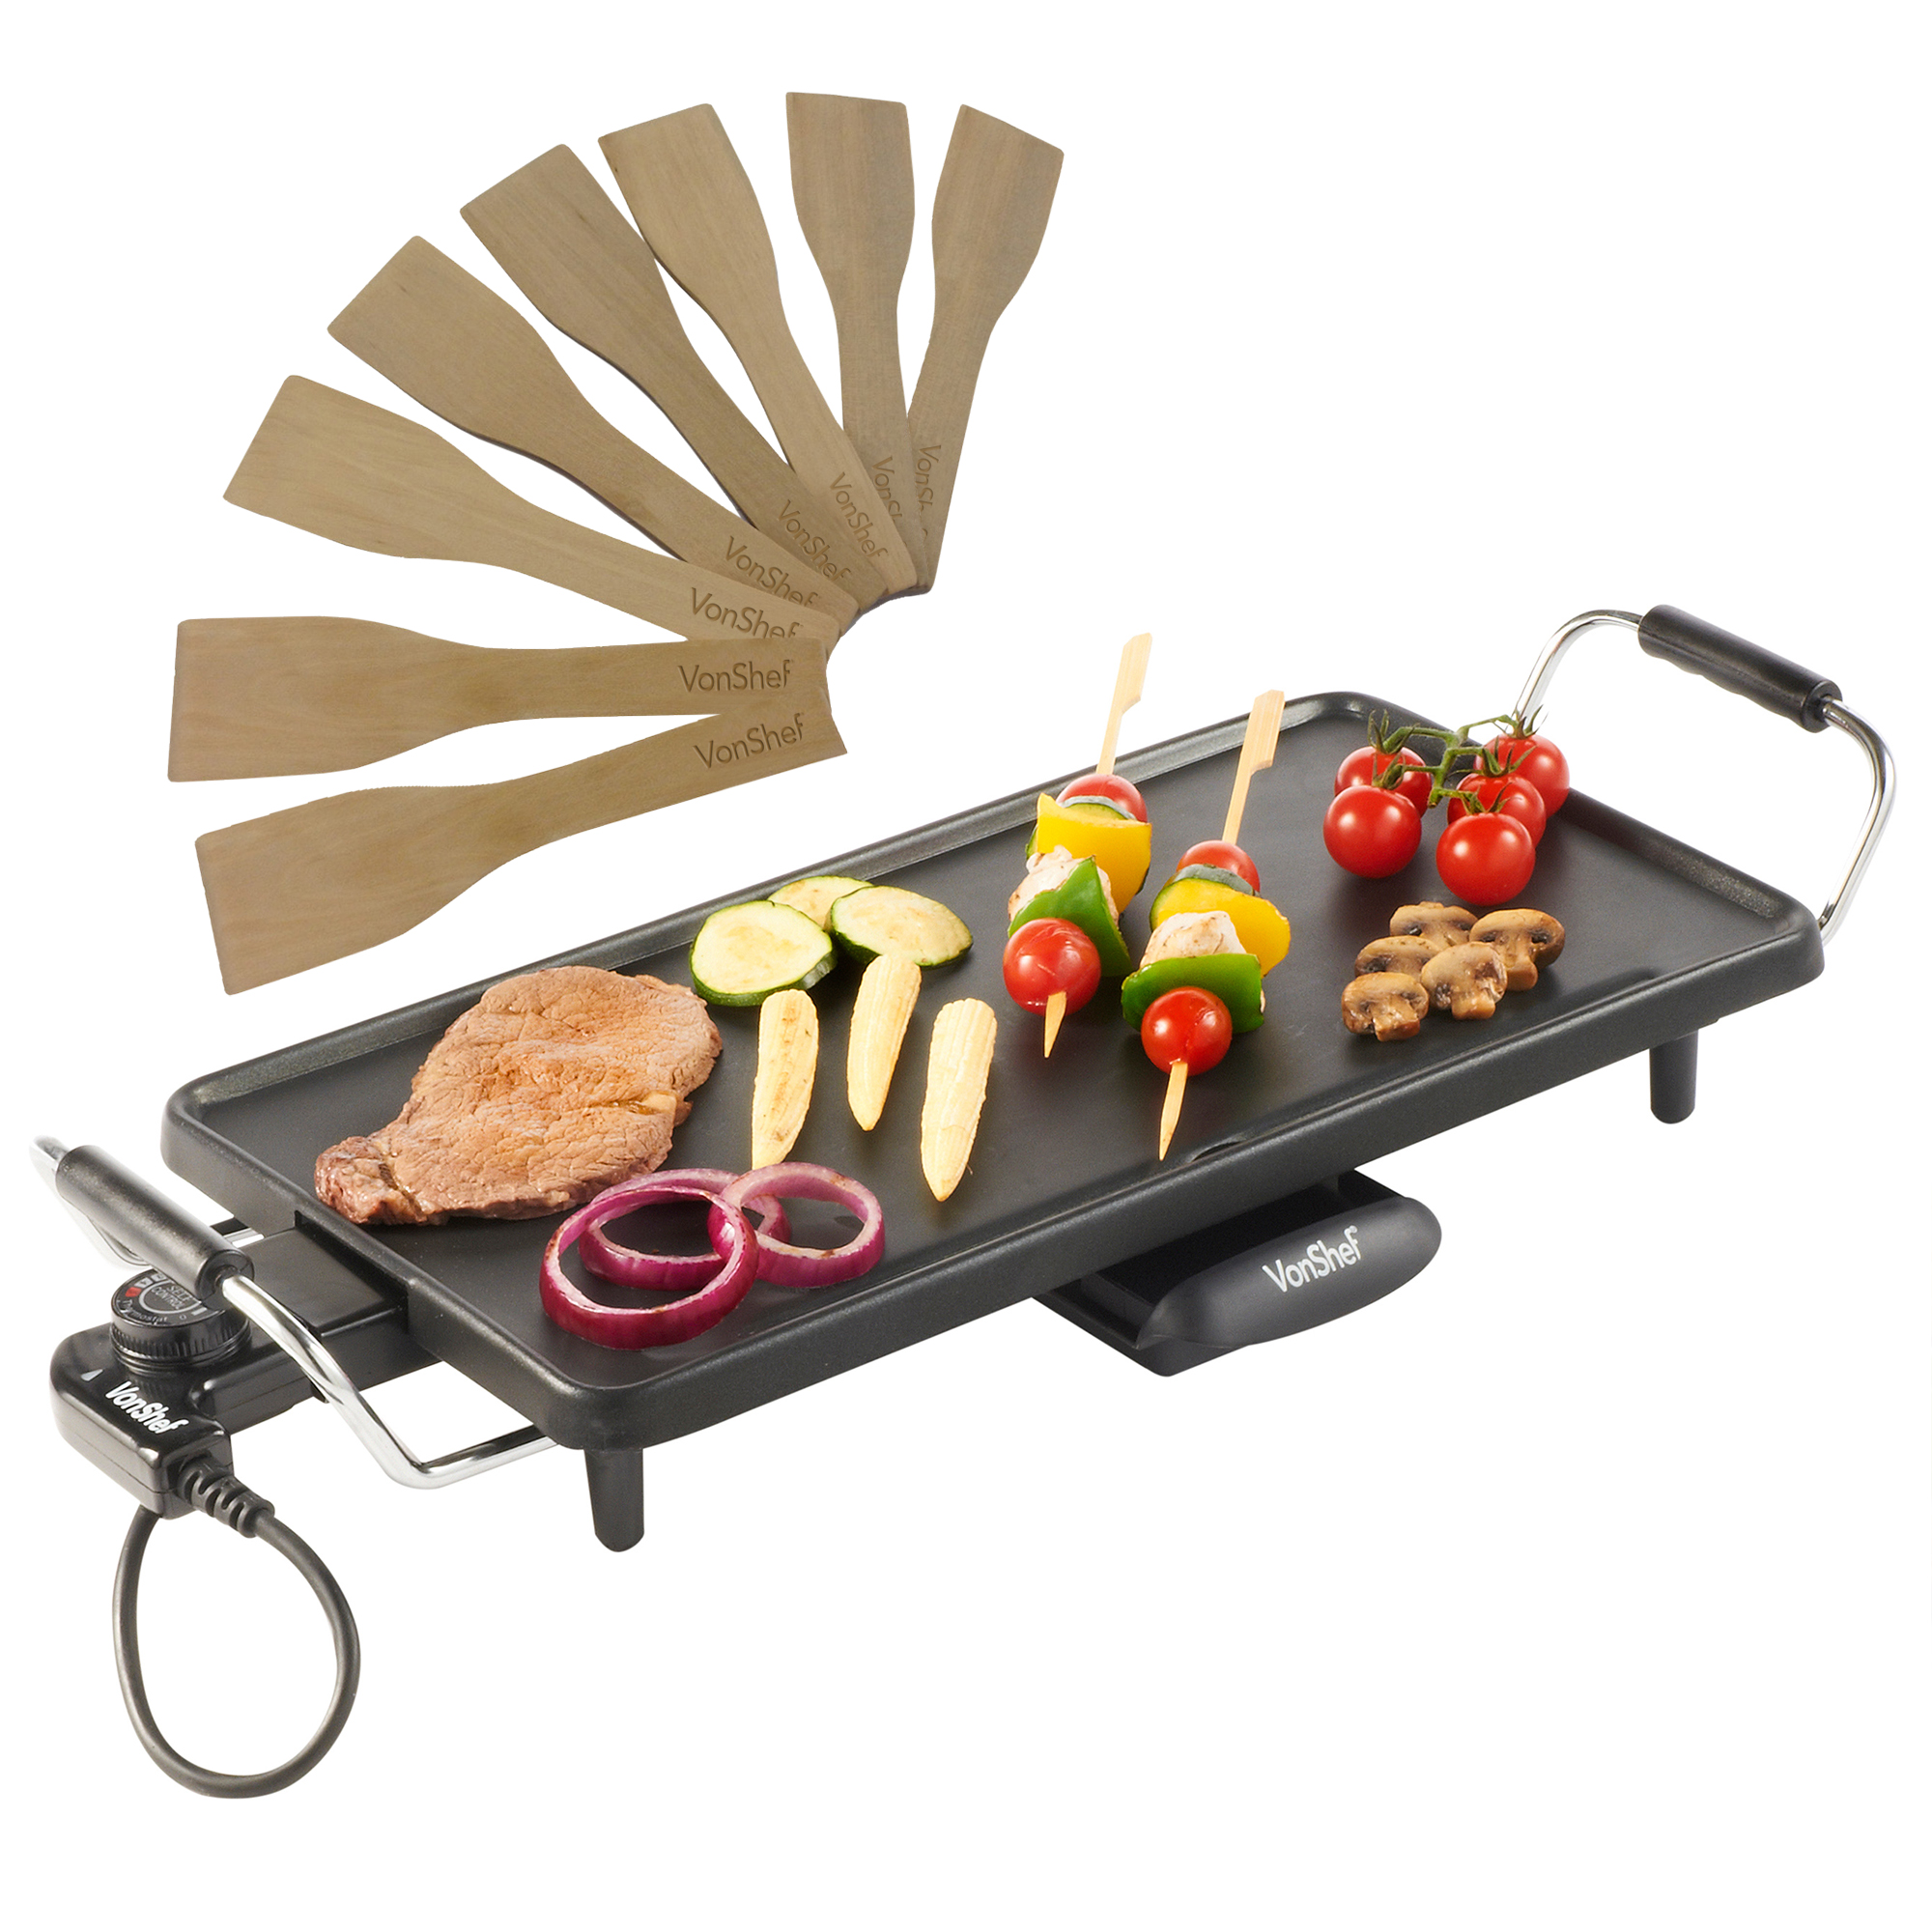 VonShef Electric Teppanyaki Table Top Grill Griddle BBQ Barbecue ...